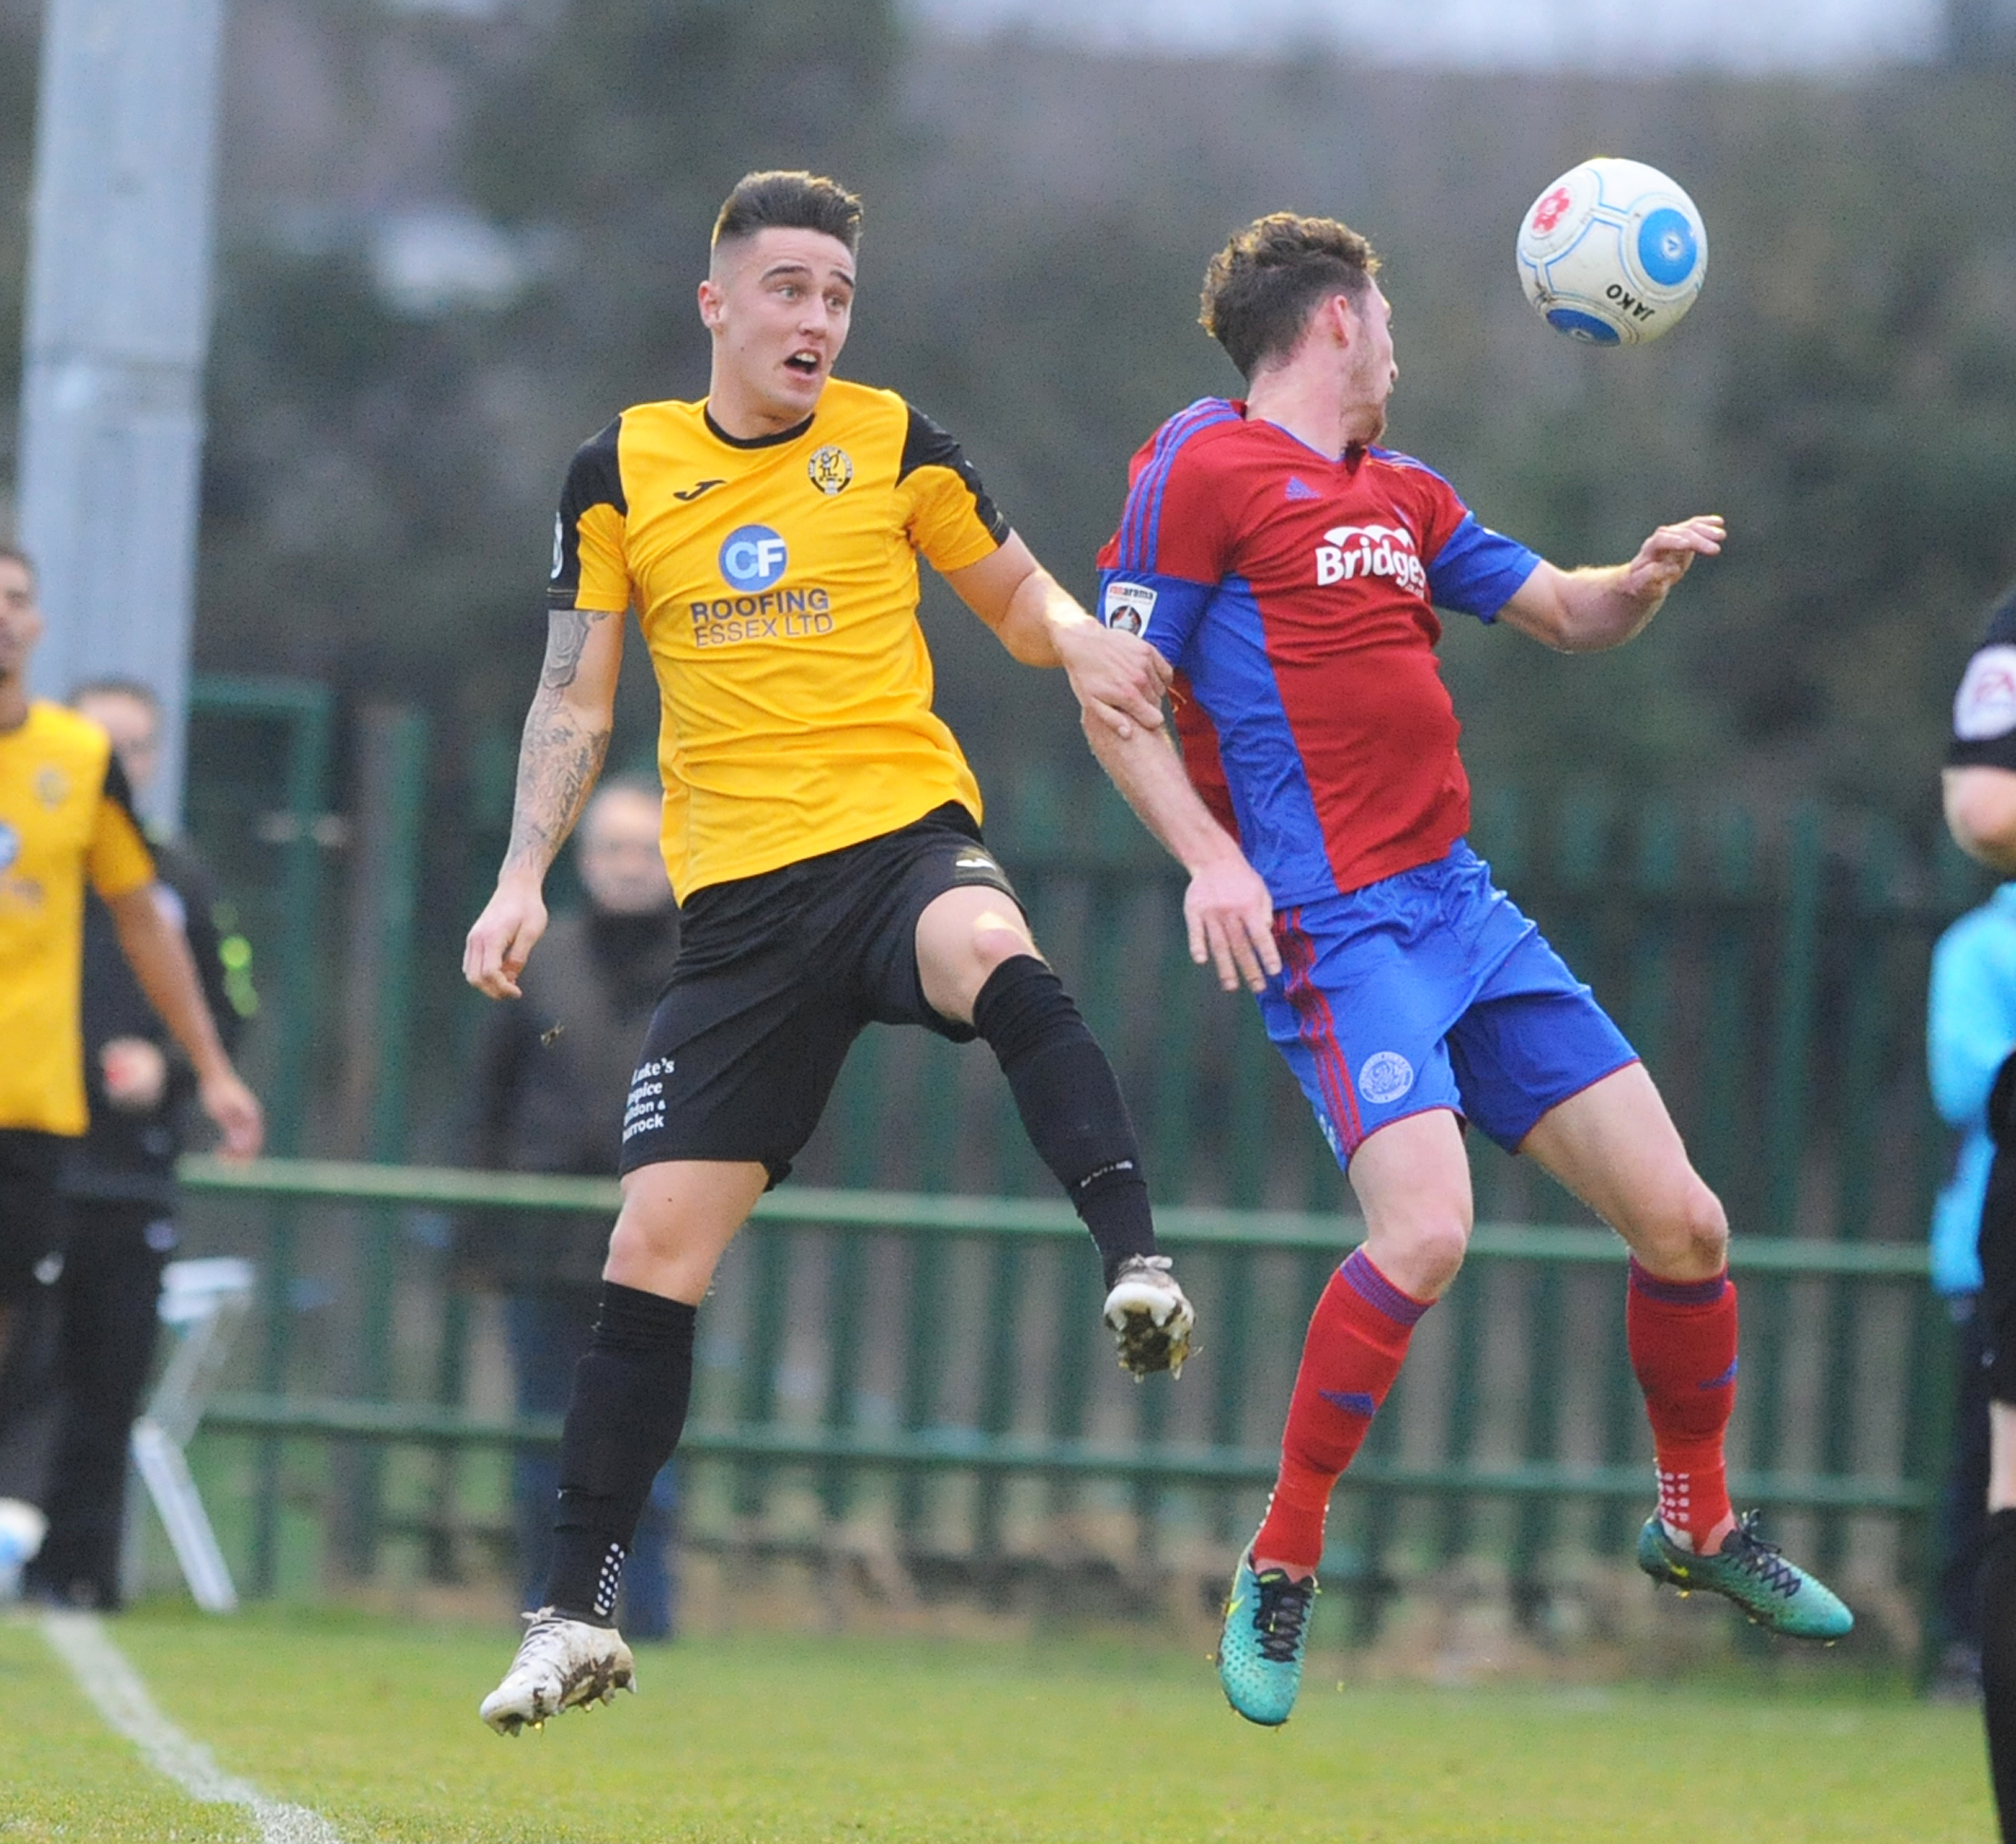 Repeat - East Thurrock will welcome Aldershot once again